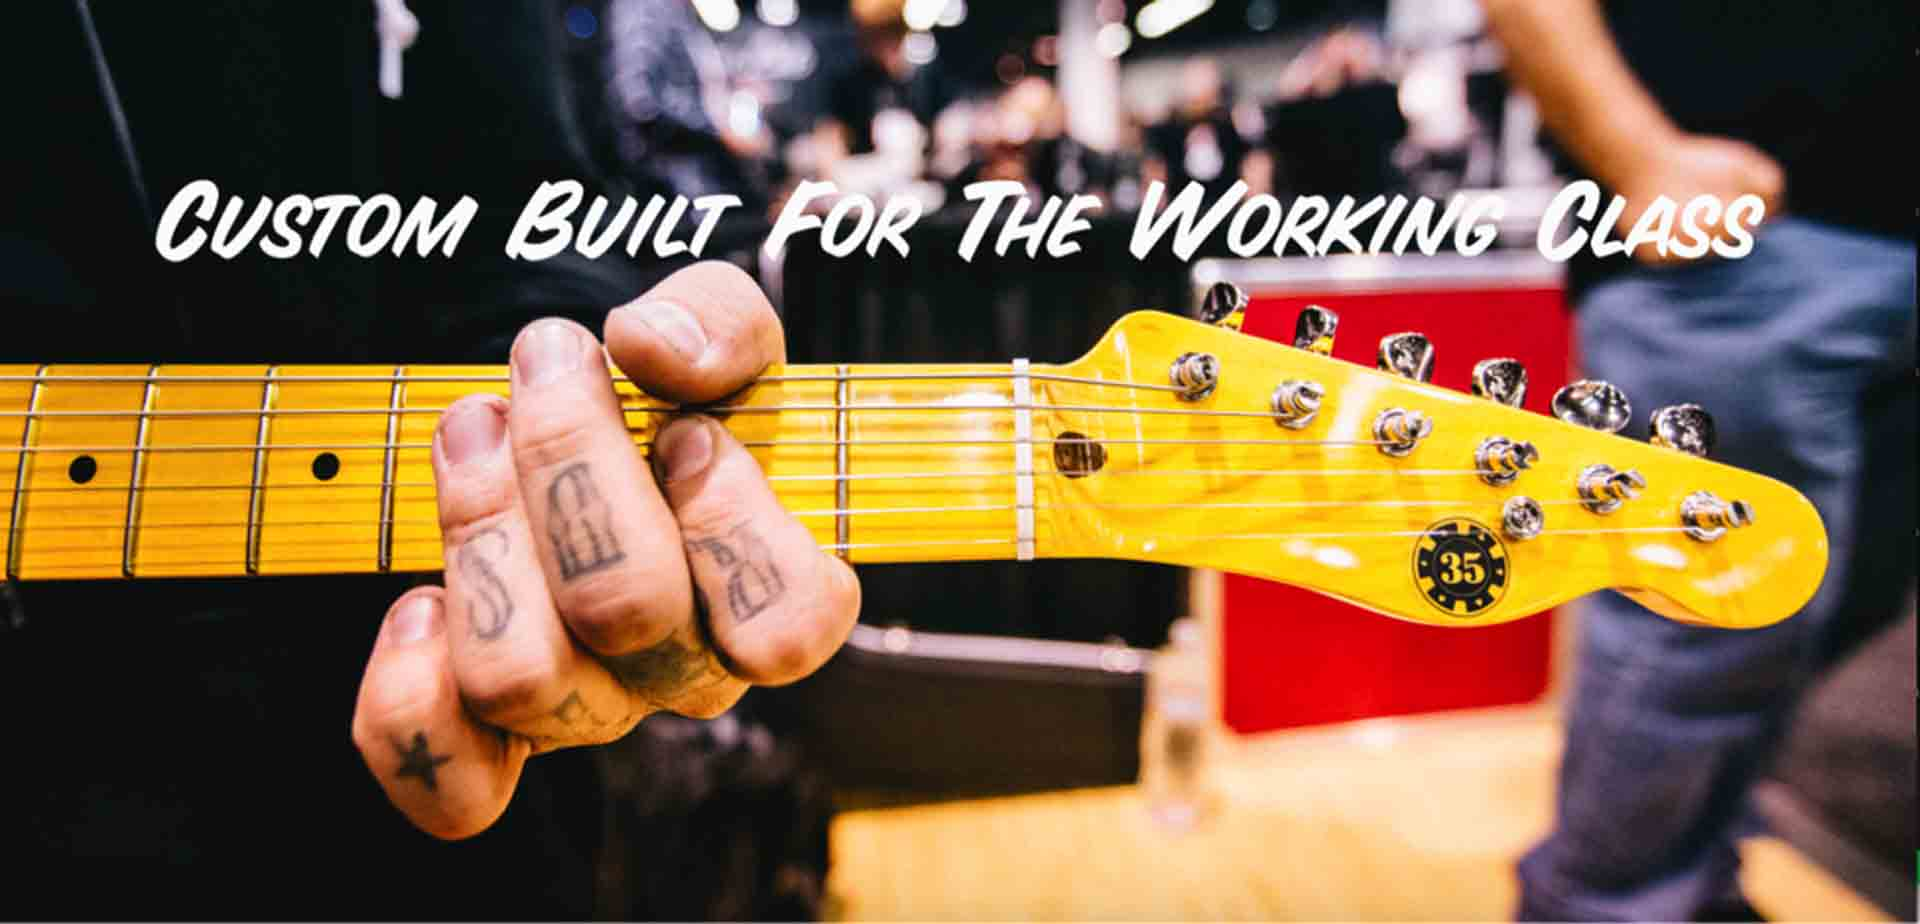 Black 35 Guitars Custom Built for the Working Class.jpg